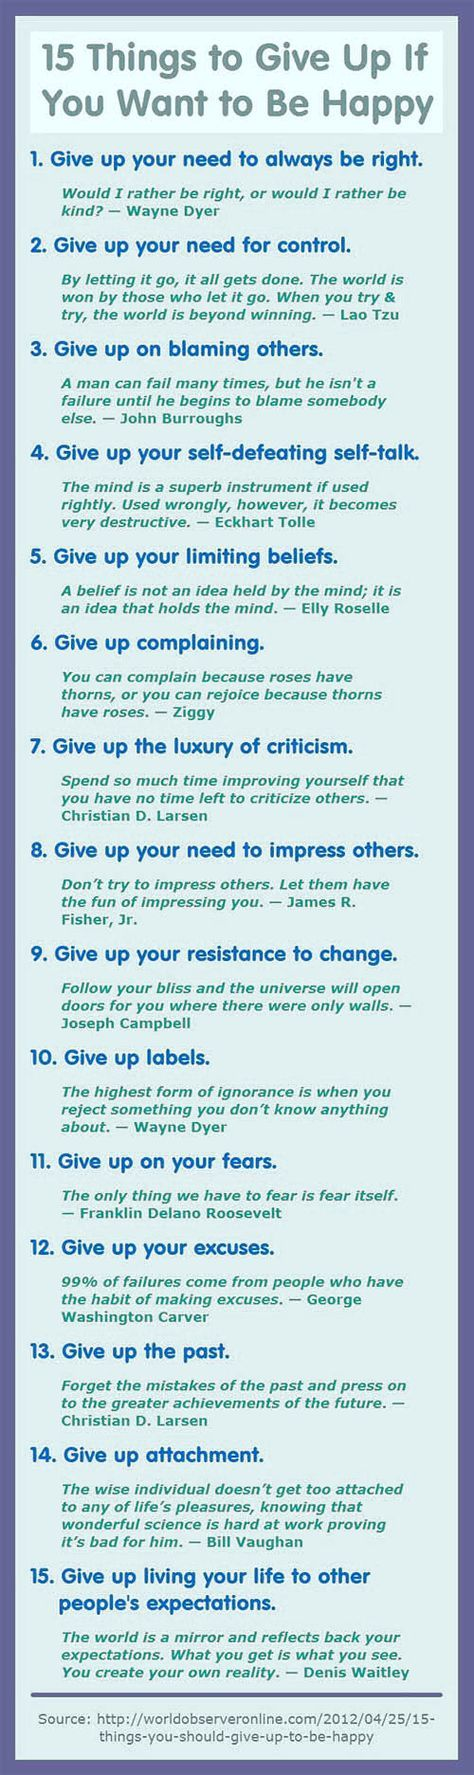 15 Things To Give Up If You Want To Be Happy happy life happiness positive emotions mental health confidence self improvement self help emotional health